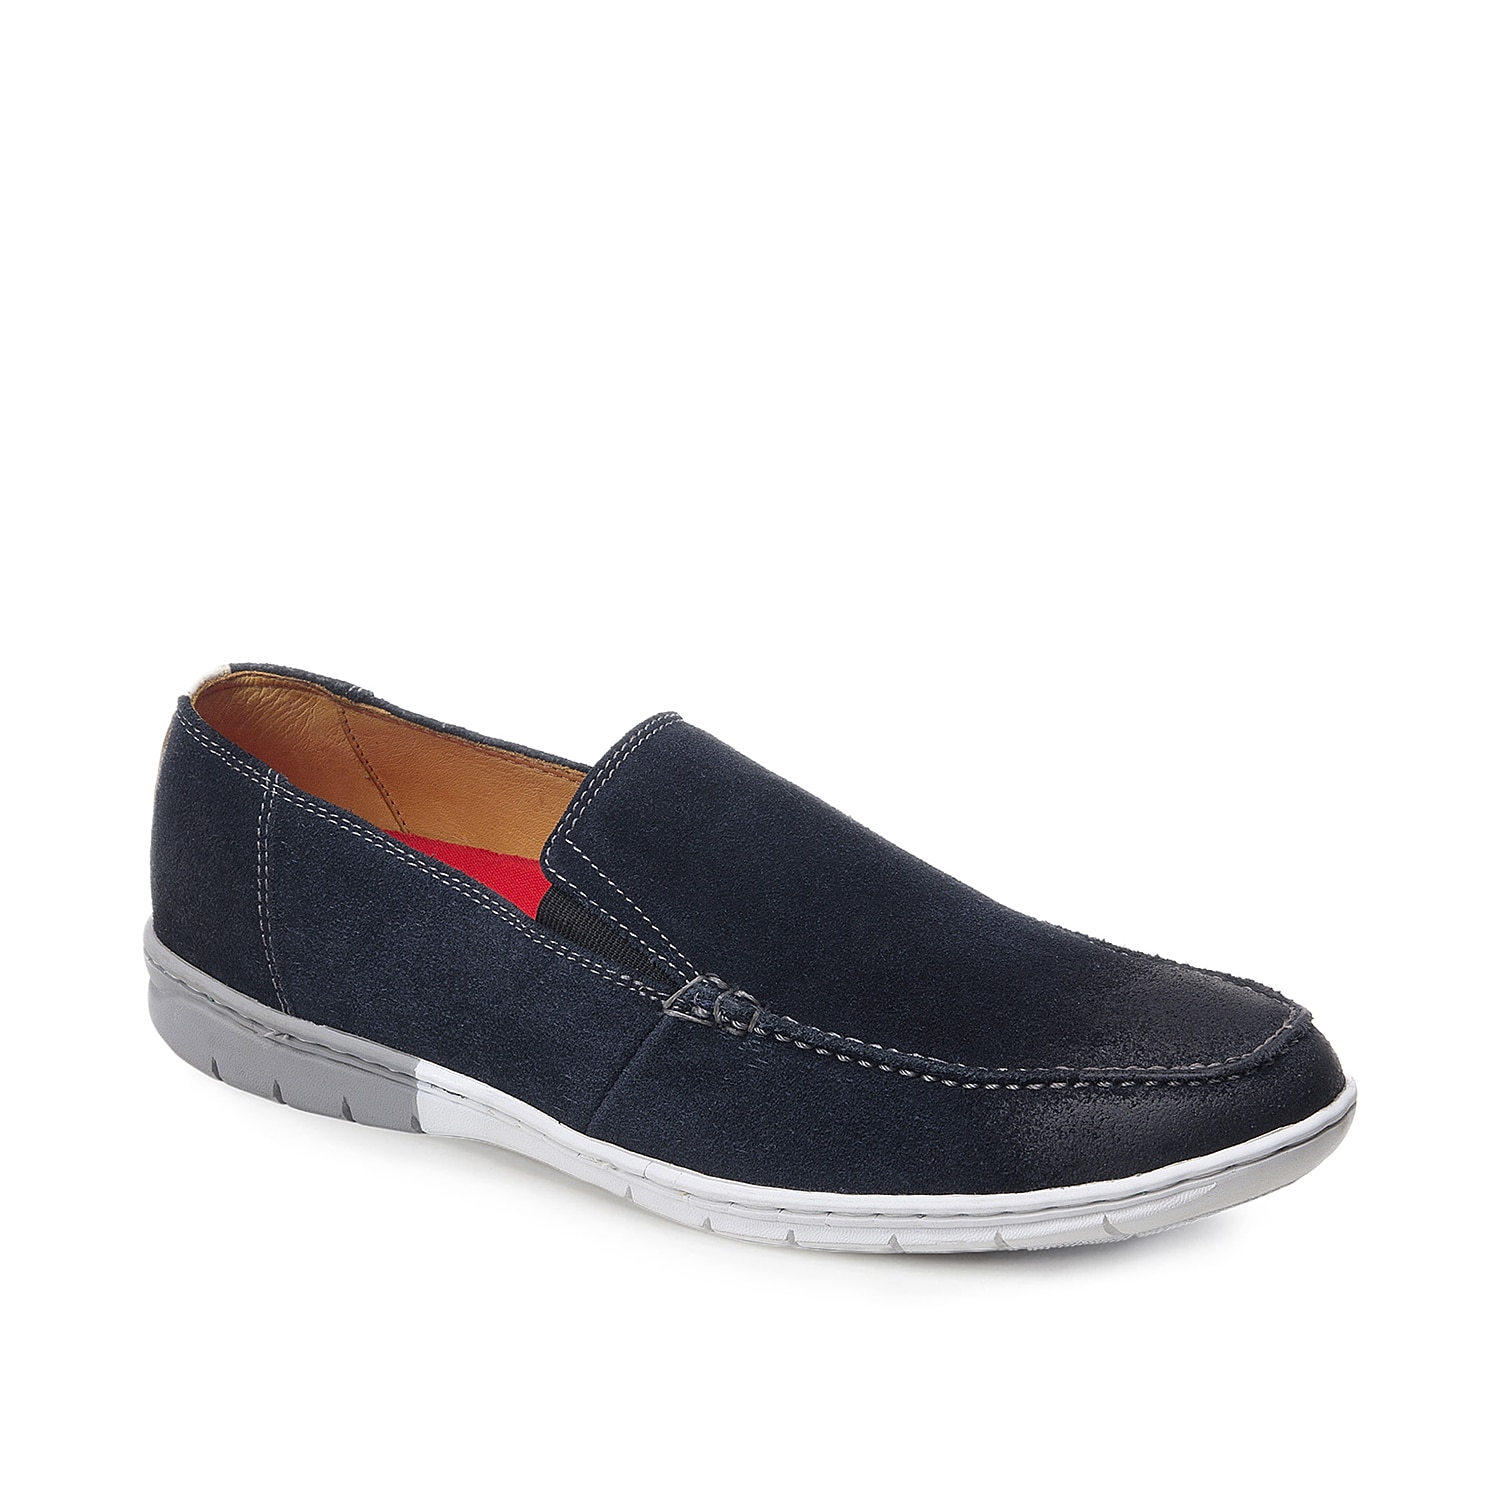 The Manson slip-on sneaker from Sandro Moscoloni is the perfect mix of sporty and tailored style. A breathable leather lining keeps you comfortable while the rubber sole ensures sturdy steps.